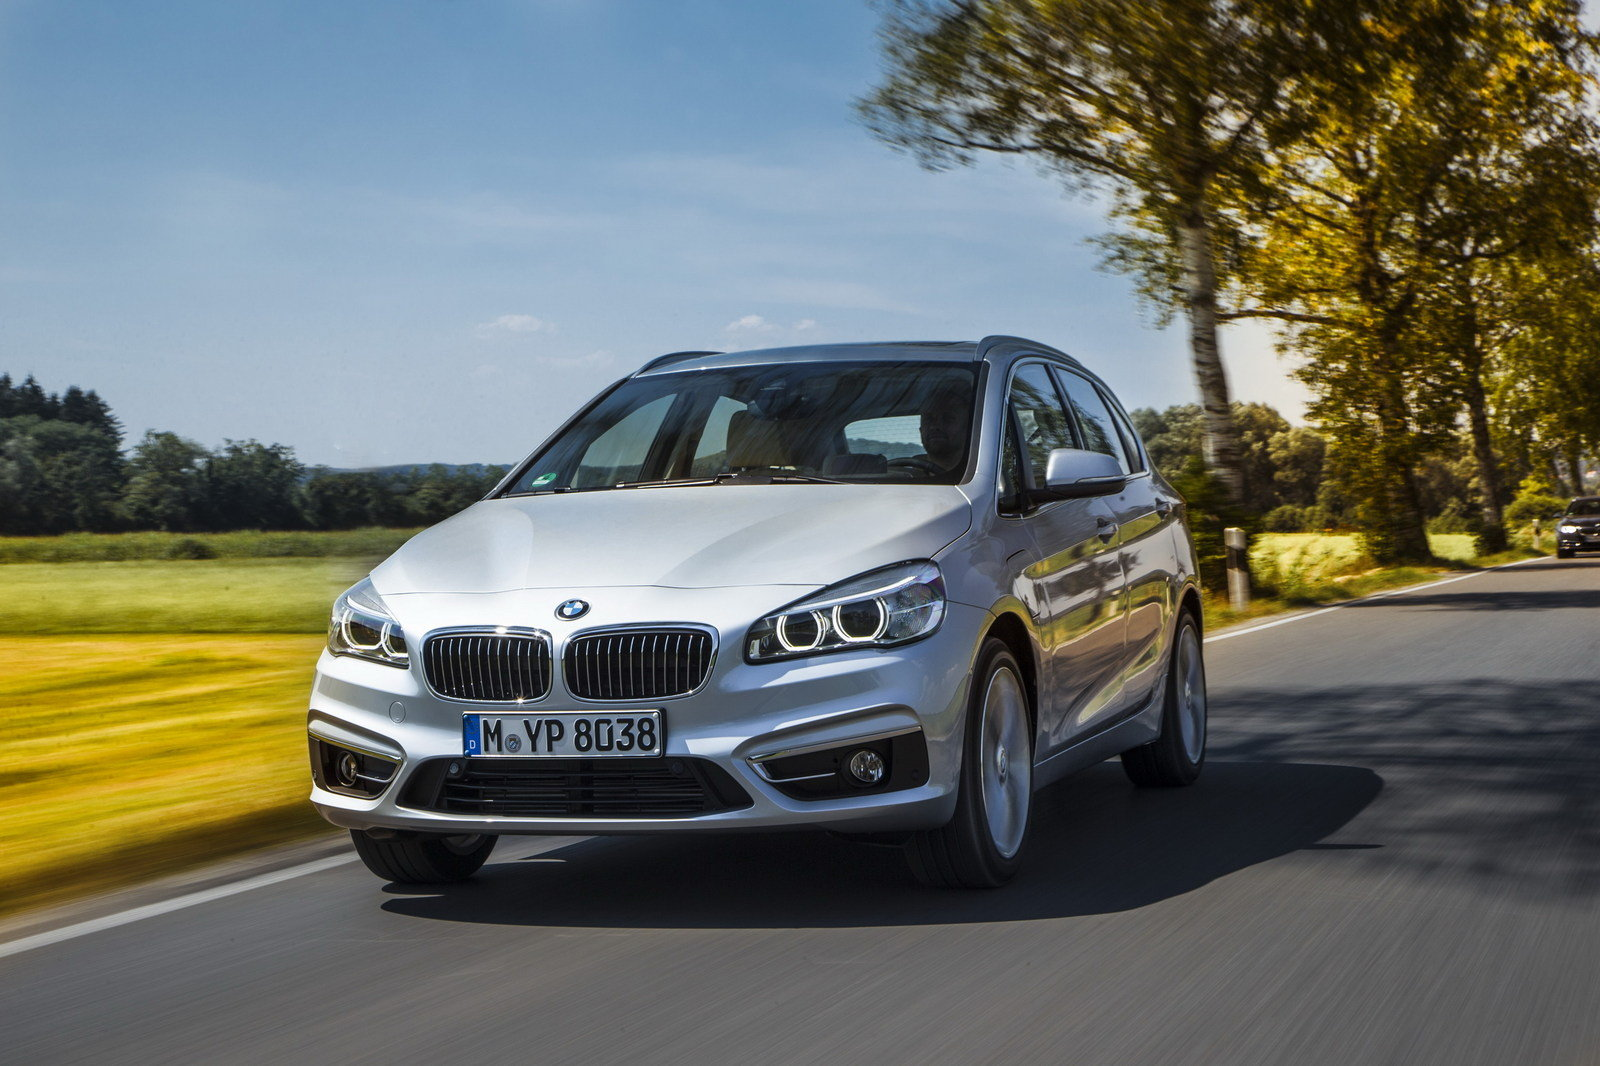 2016 bmw 225xe plug in hybrid picture 644490 car review top speed. Black Bedroom Furniture Sets. Home Design Ideas